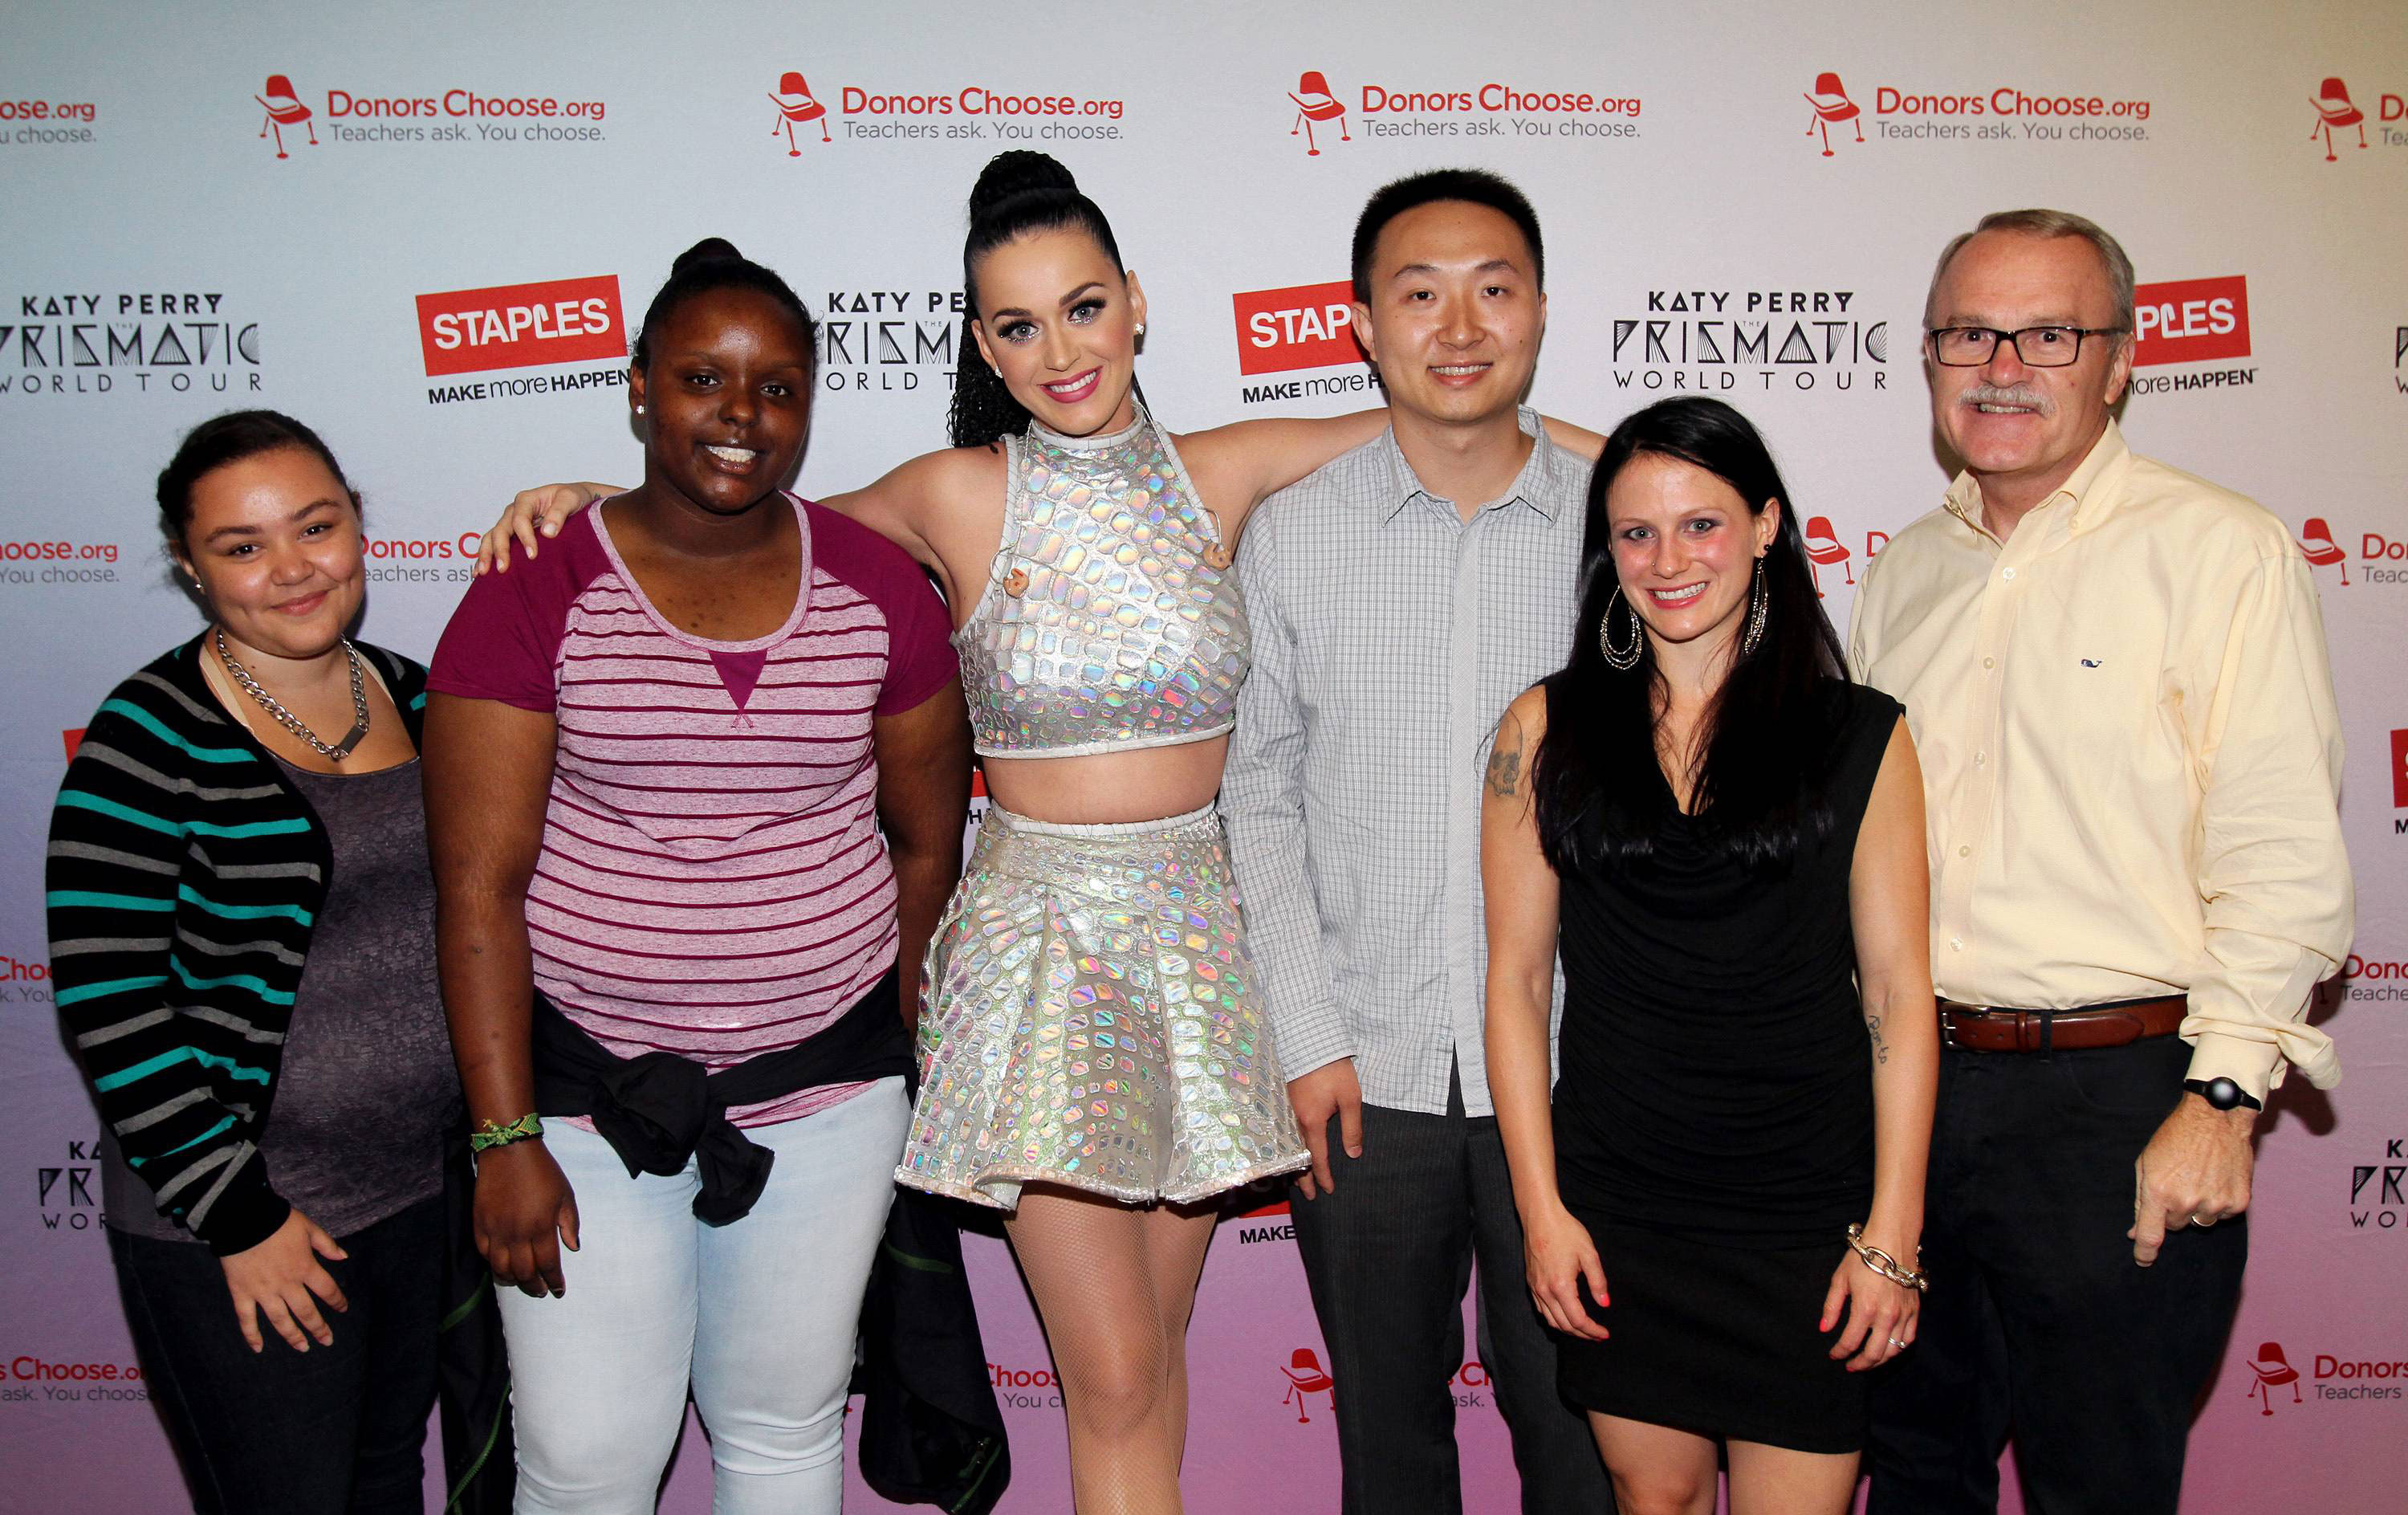 """Global pop star Katy Perry, center, with local teachers, students and CEO and Chairman, Staples, left to right, Tajia Reverdes, Janile Campbell, Yu Chen, Amanda Robb and Ronald Sargent backstage at the TD Garden during her Prismatic World Tour performance on Fri., Aug 1 in Boston, Mass. Staples teamed up with superstar Katy Perry to """"Make Roar Happen"""" and support teachers during the back-to-school season by donating $1 million to DonorsChoose.org, a charity that has helped fund more than 450,000 classroom projects for teachers and impacted more than 11 million students. (Photo by Marc Andrew Deley/Invision for Staples/AP Images)"""